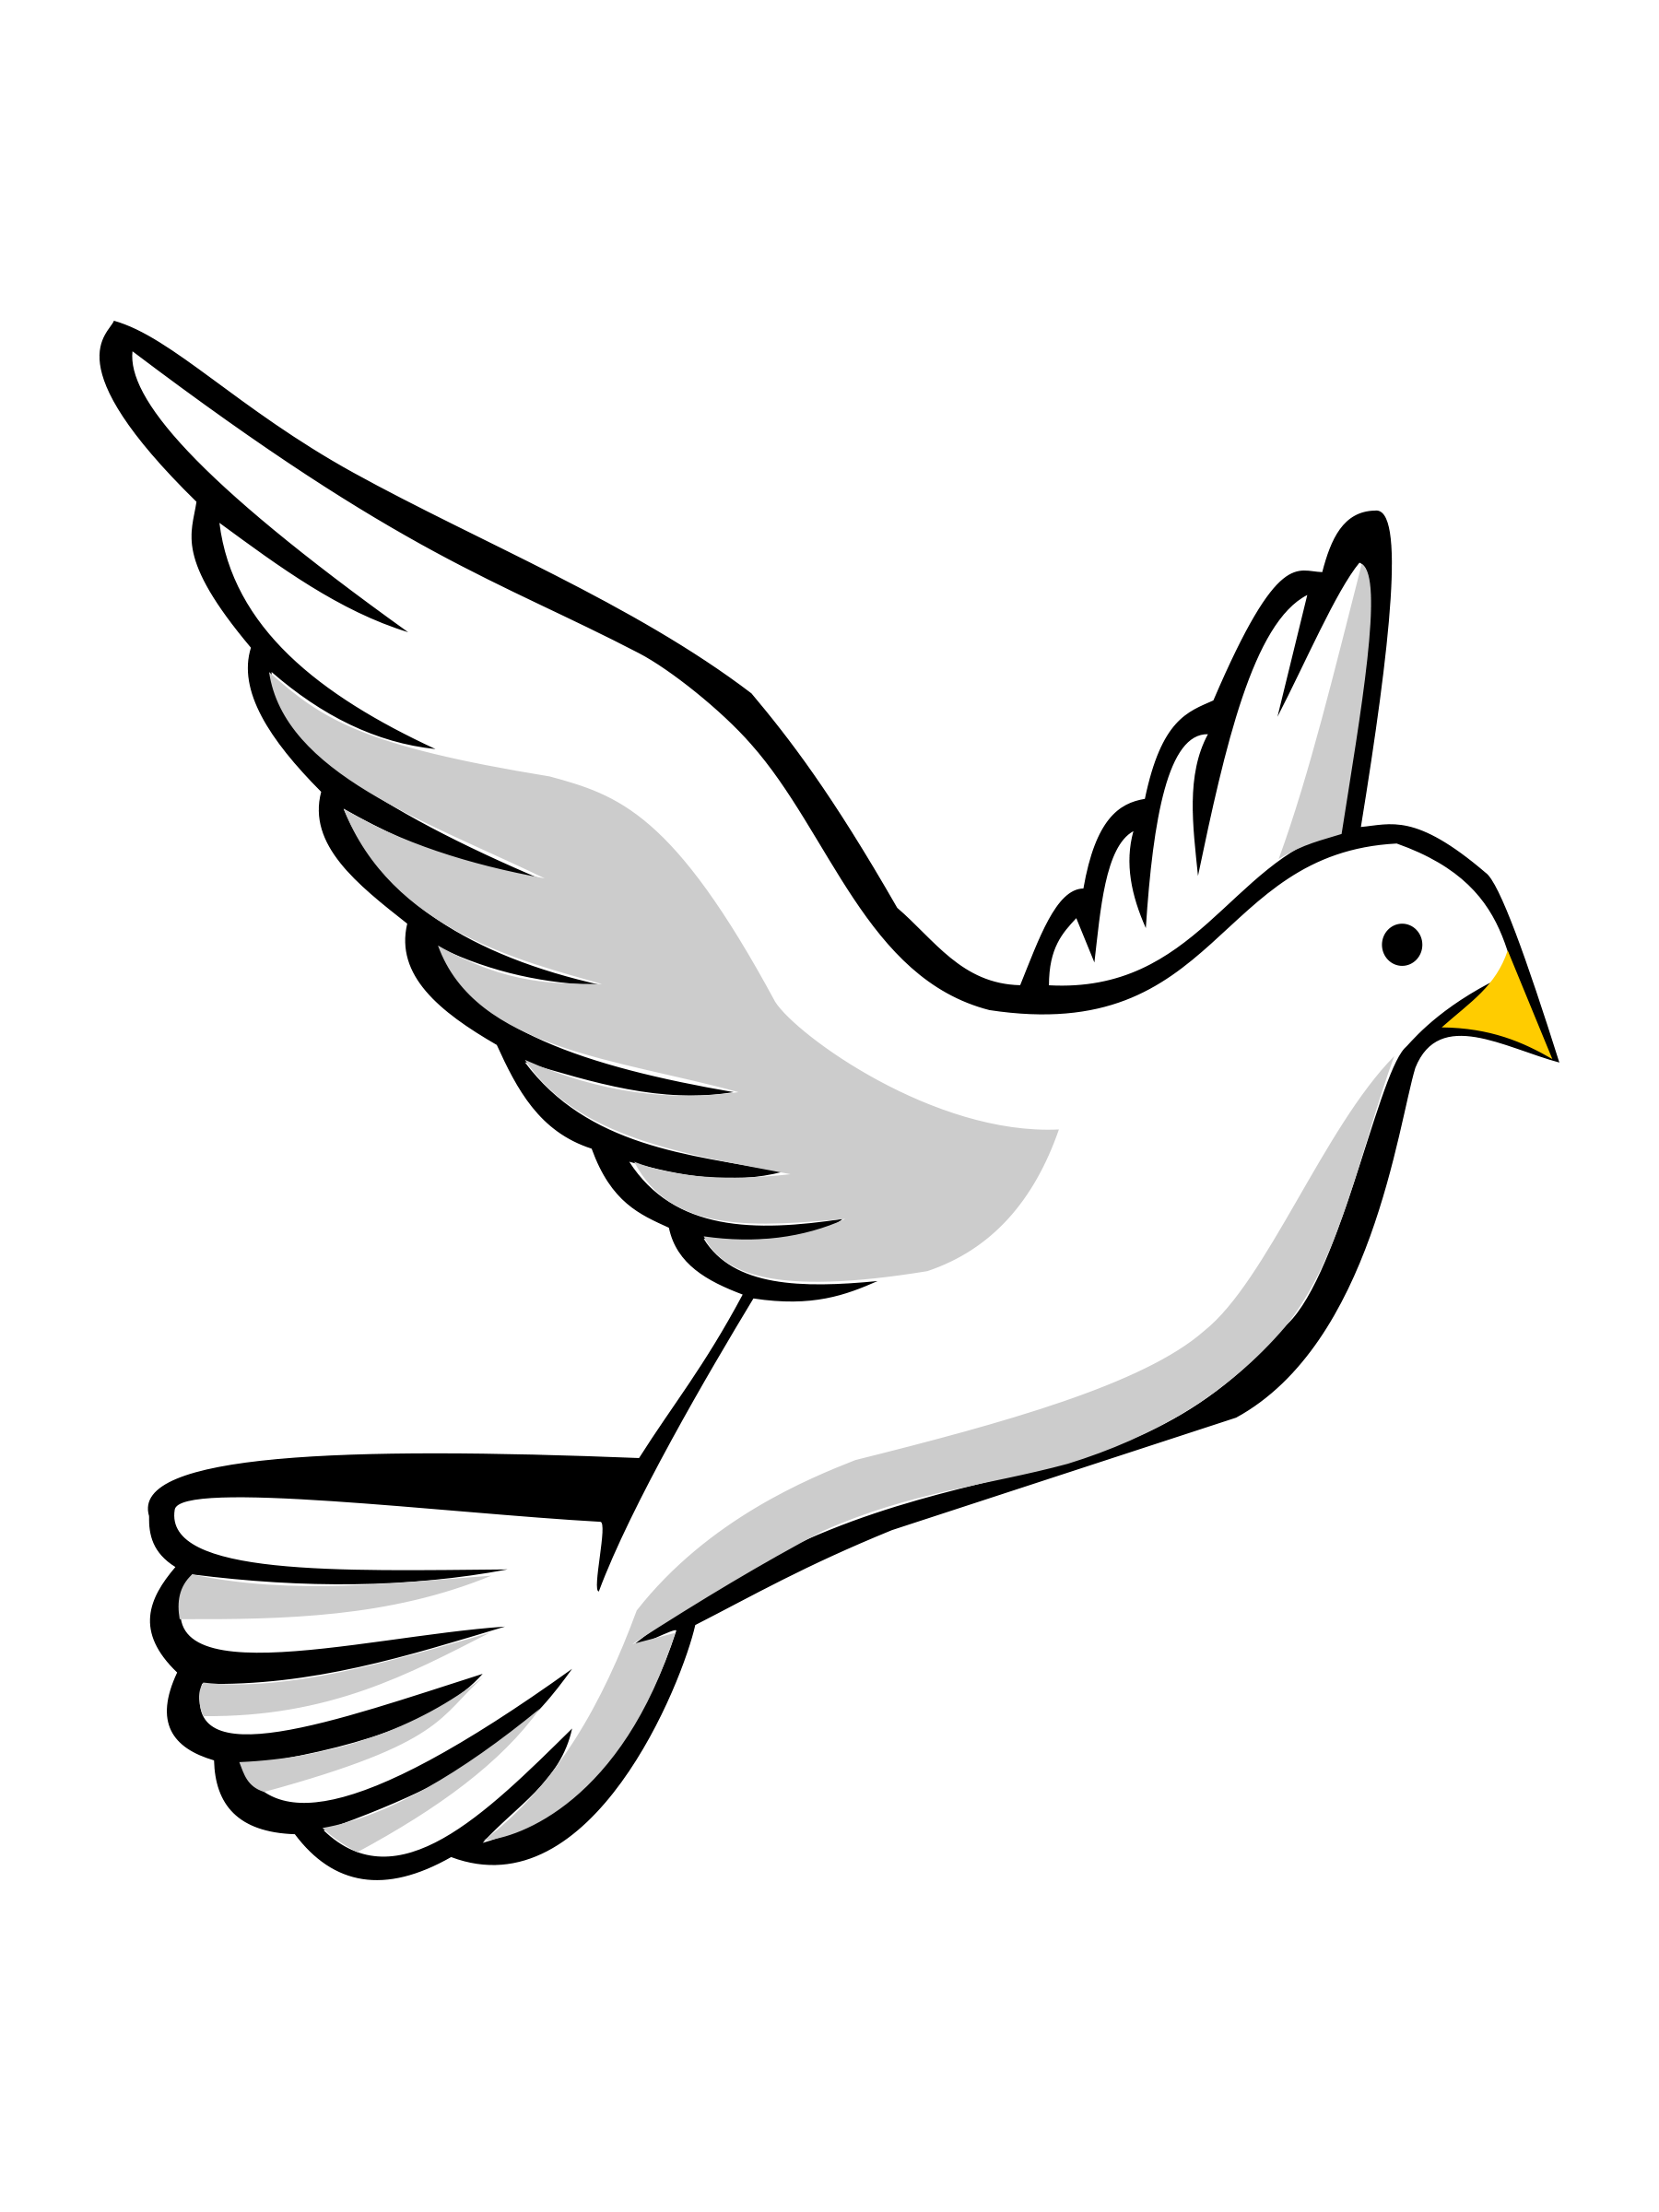 Peace clipart acknowledgement. Religious dove clip art